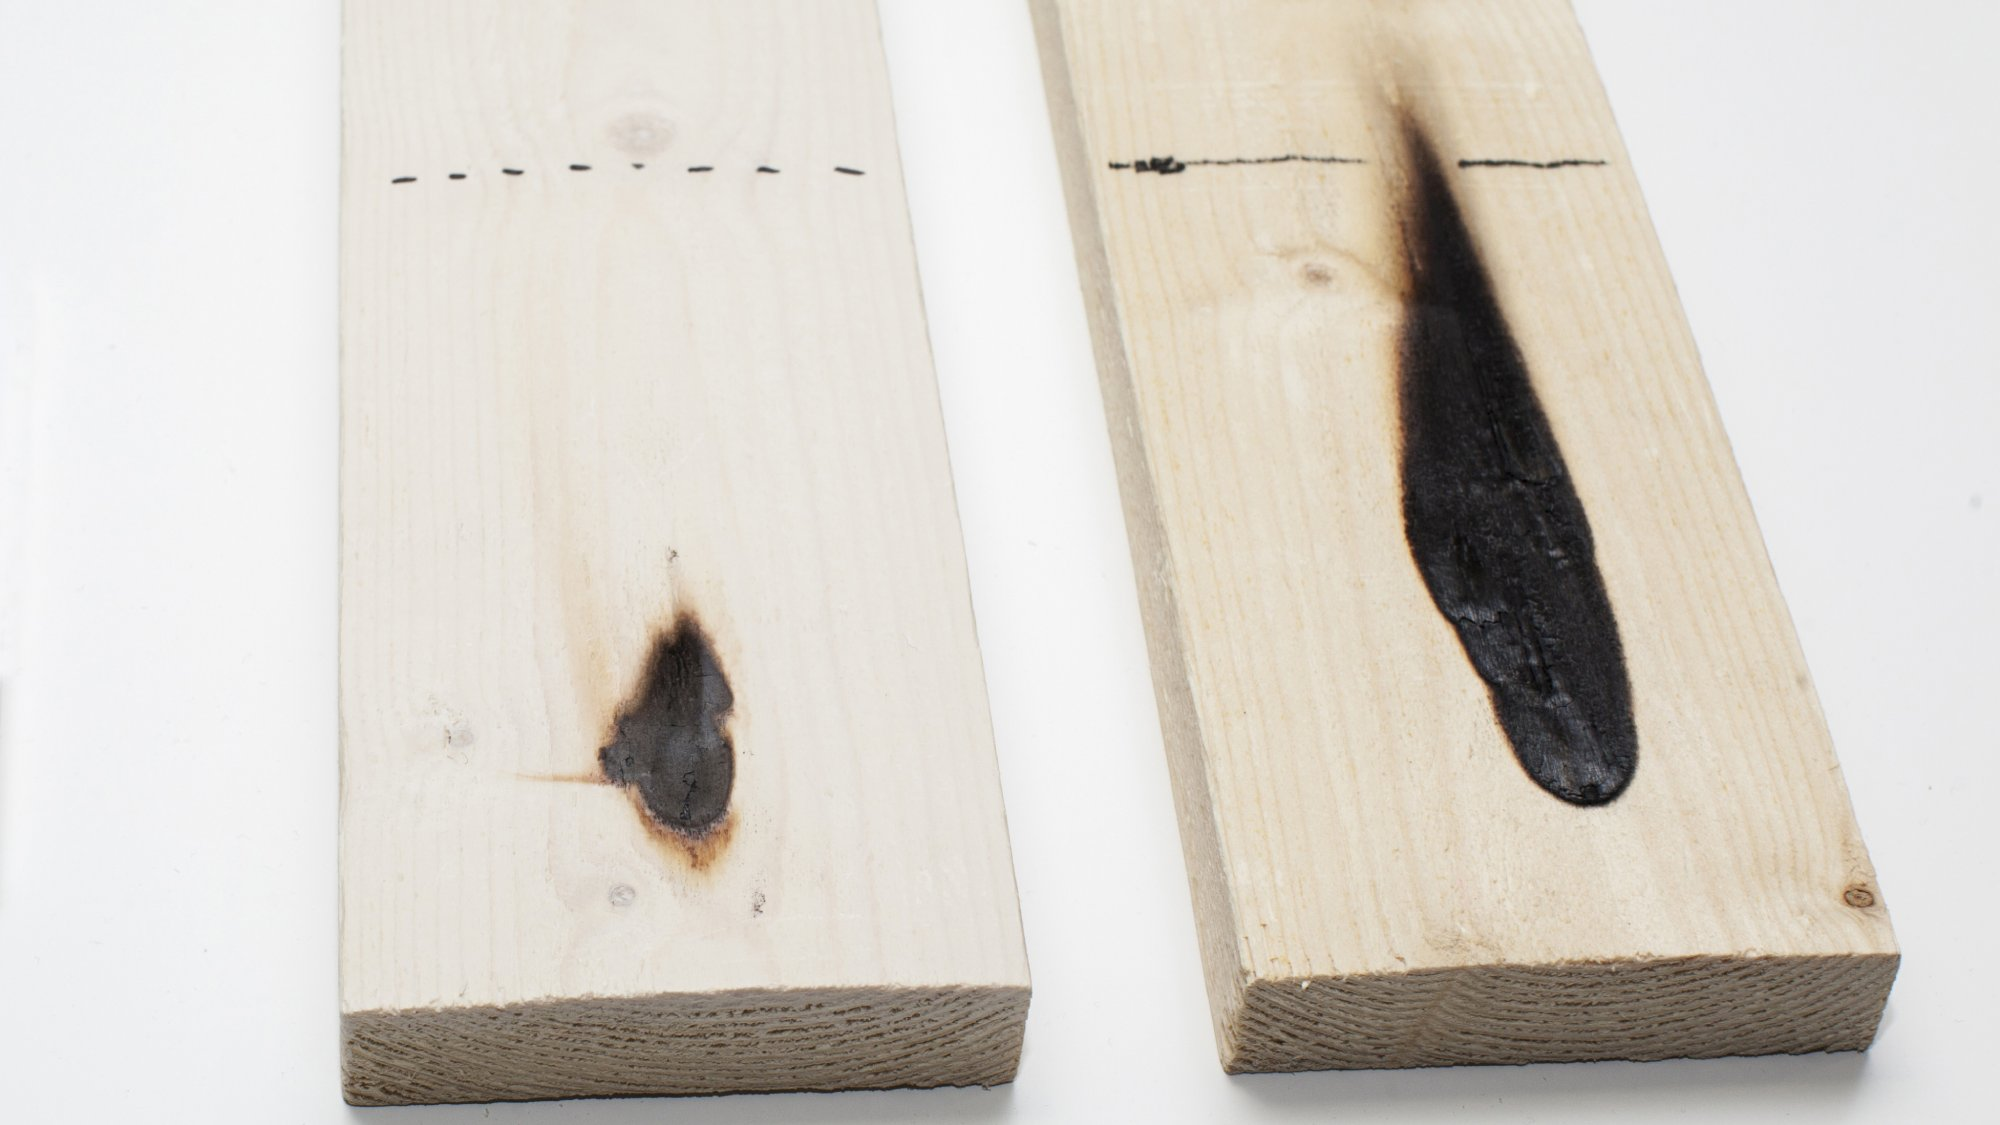 pieces of wood after flame testing